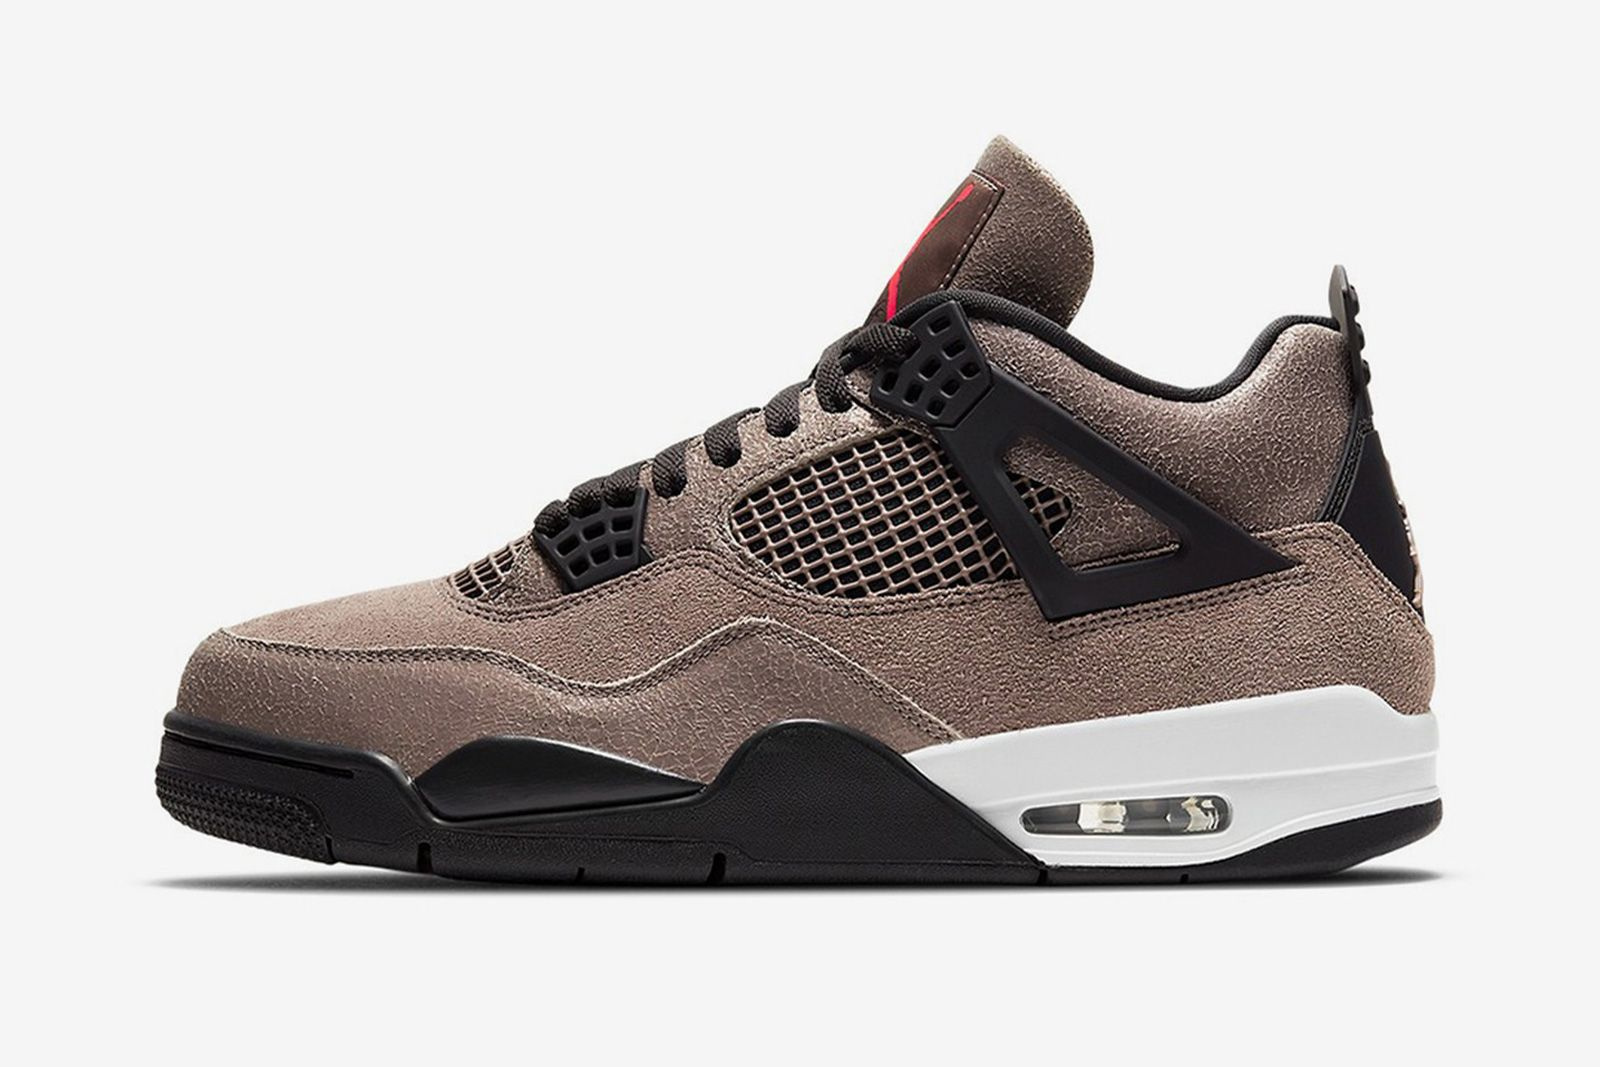 The Best General Release Air Jordans to Look Out For in 2021 31